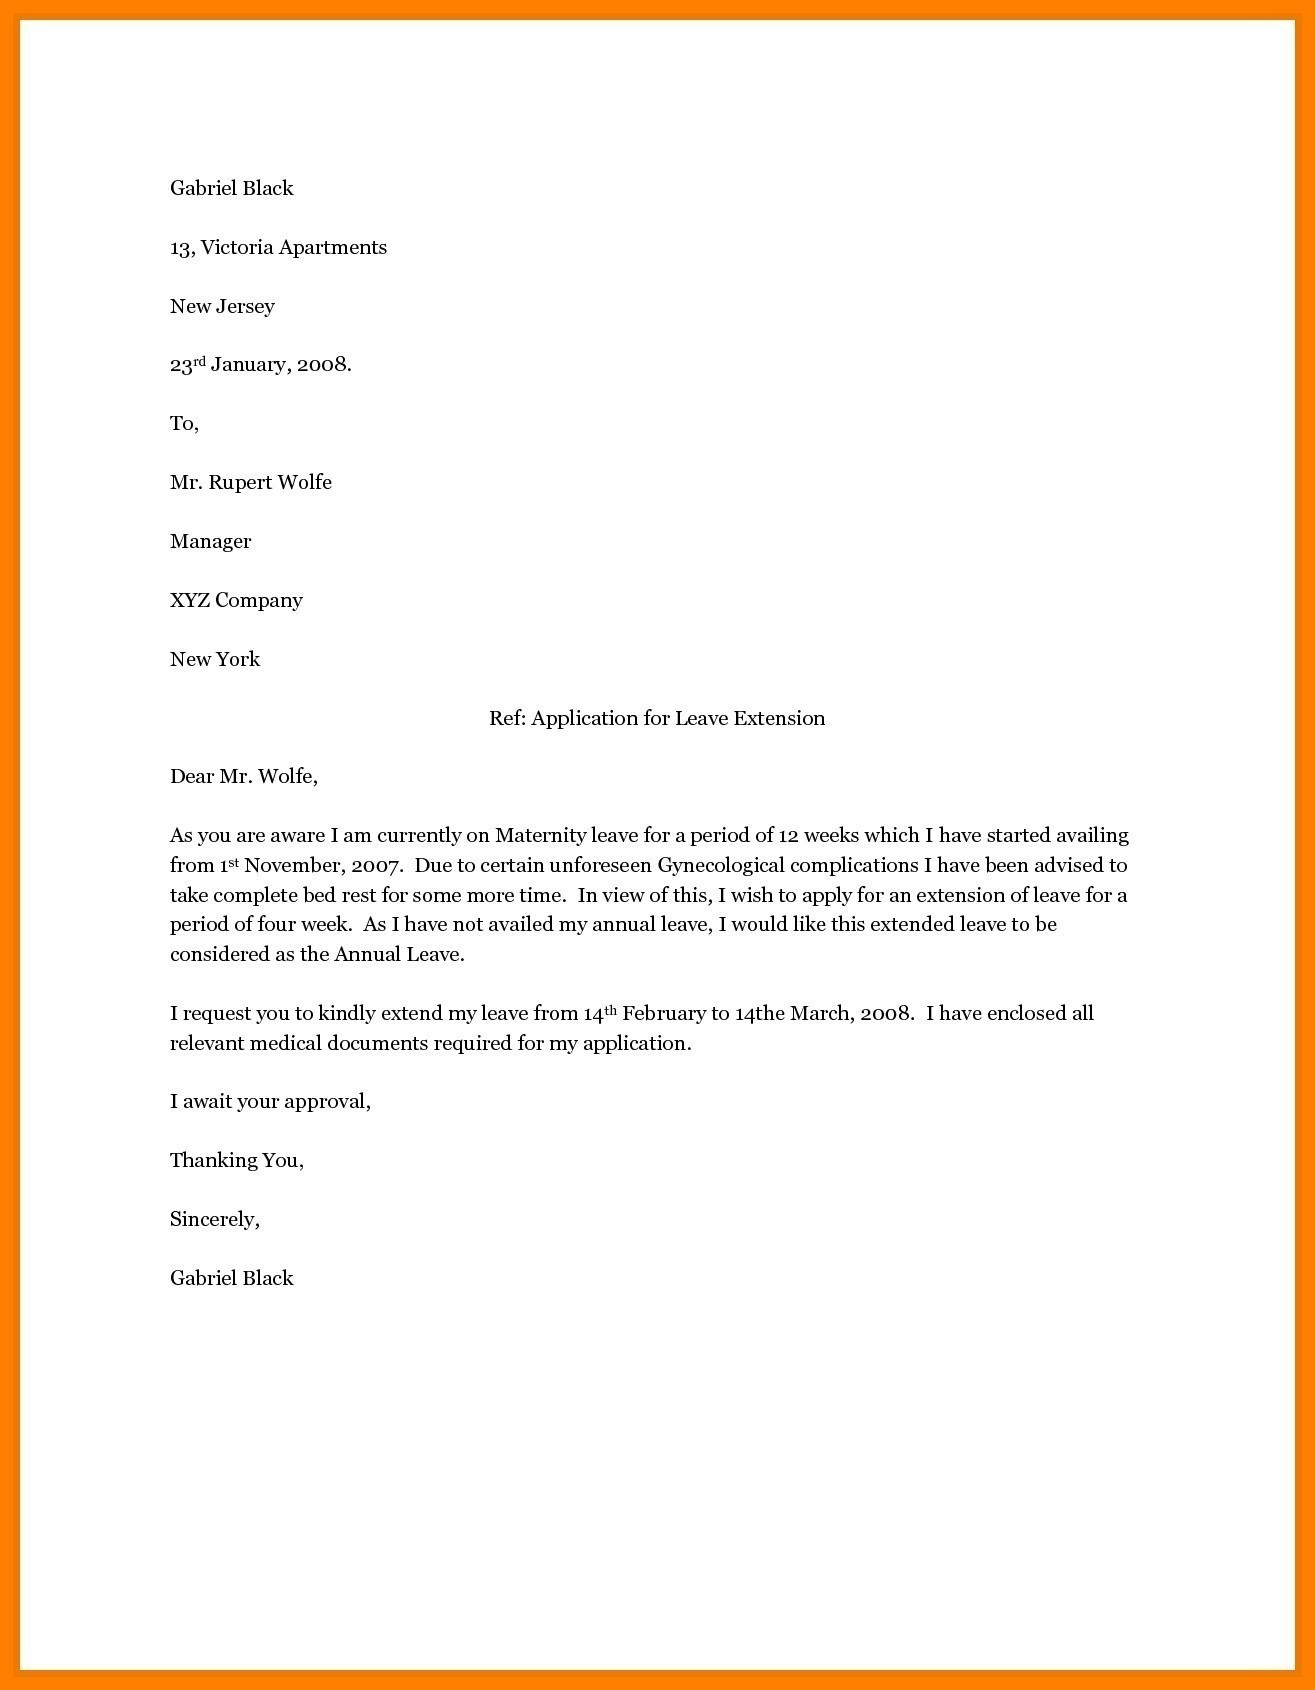 Pregnancy Confirmation Letter Template - Letter Template Maternity Leave Best Professional Letter format with